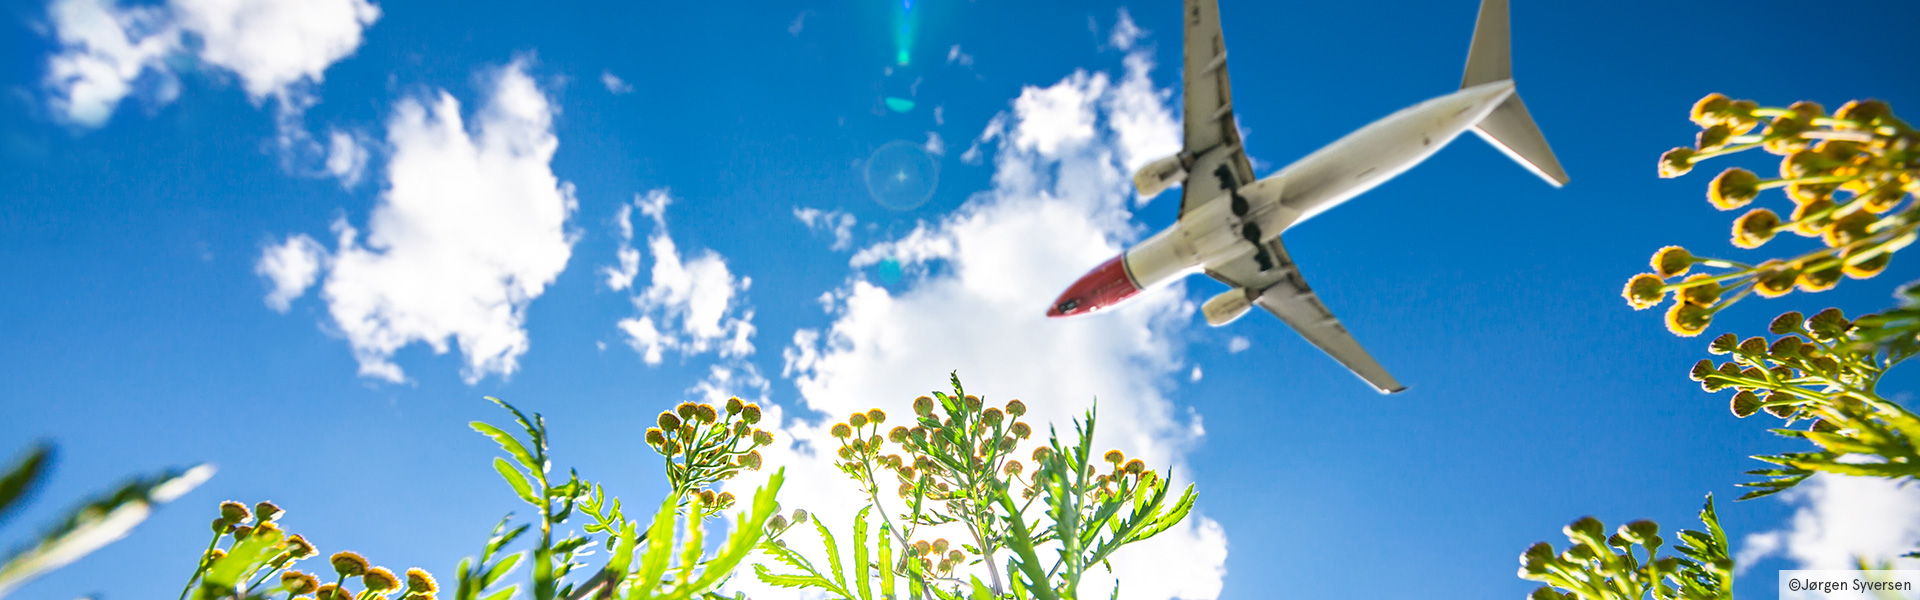 Norwegian plane flying over green flowers